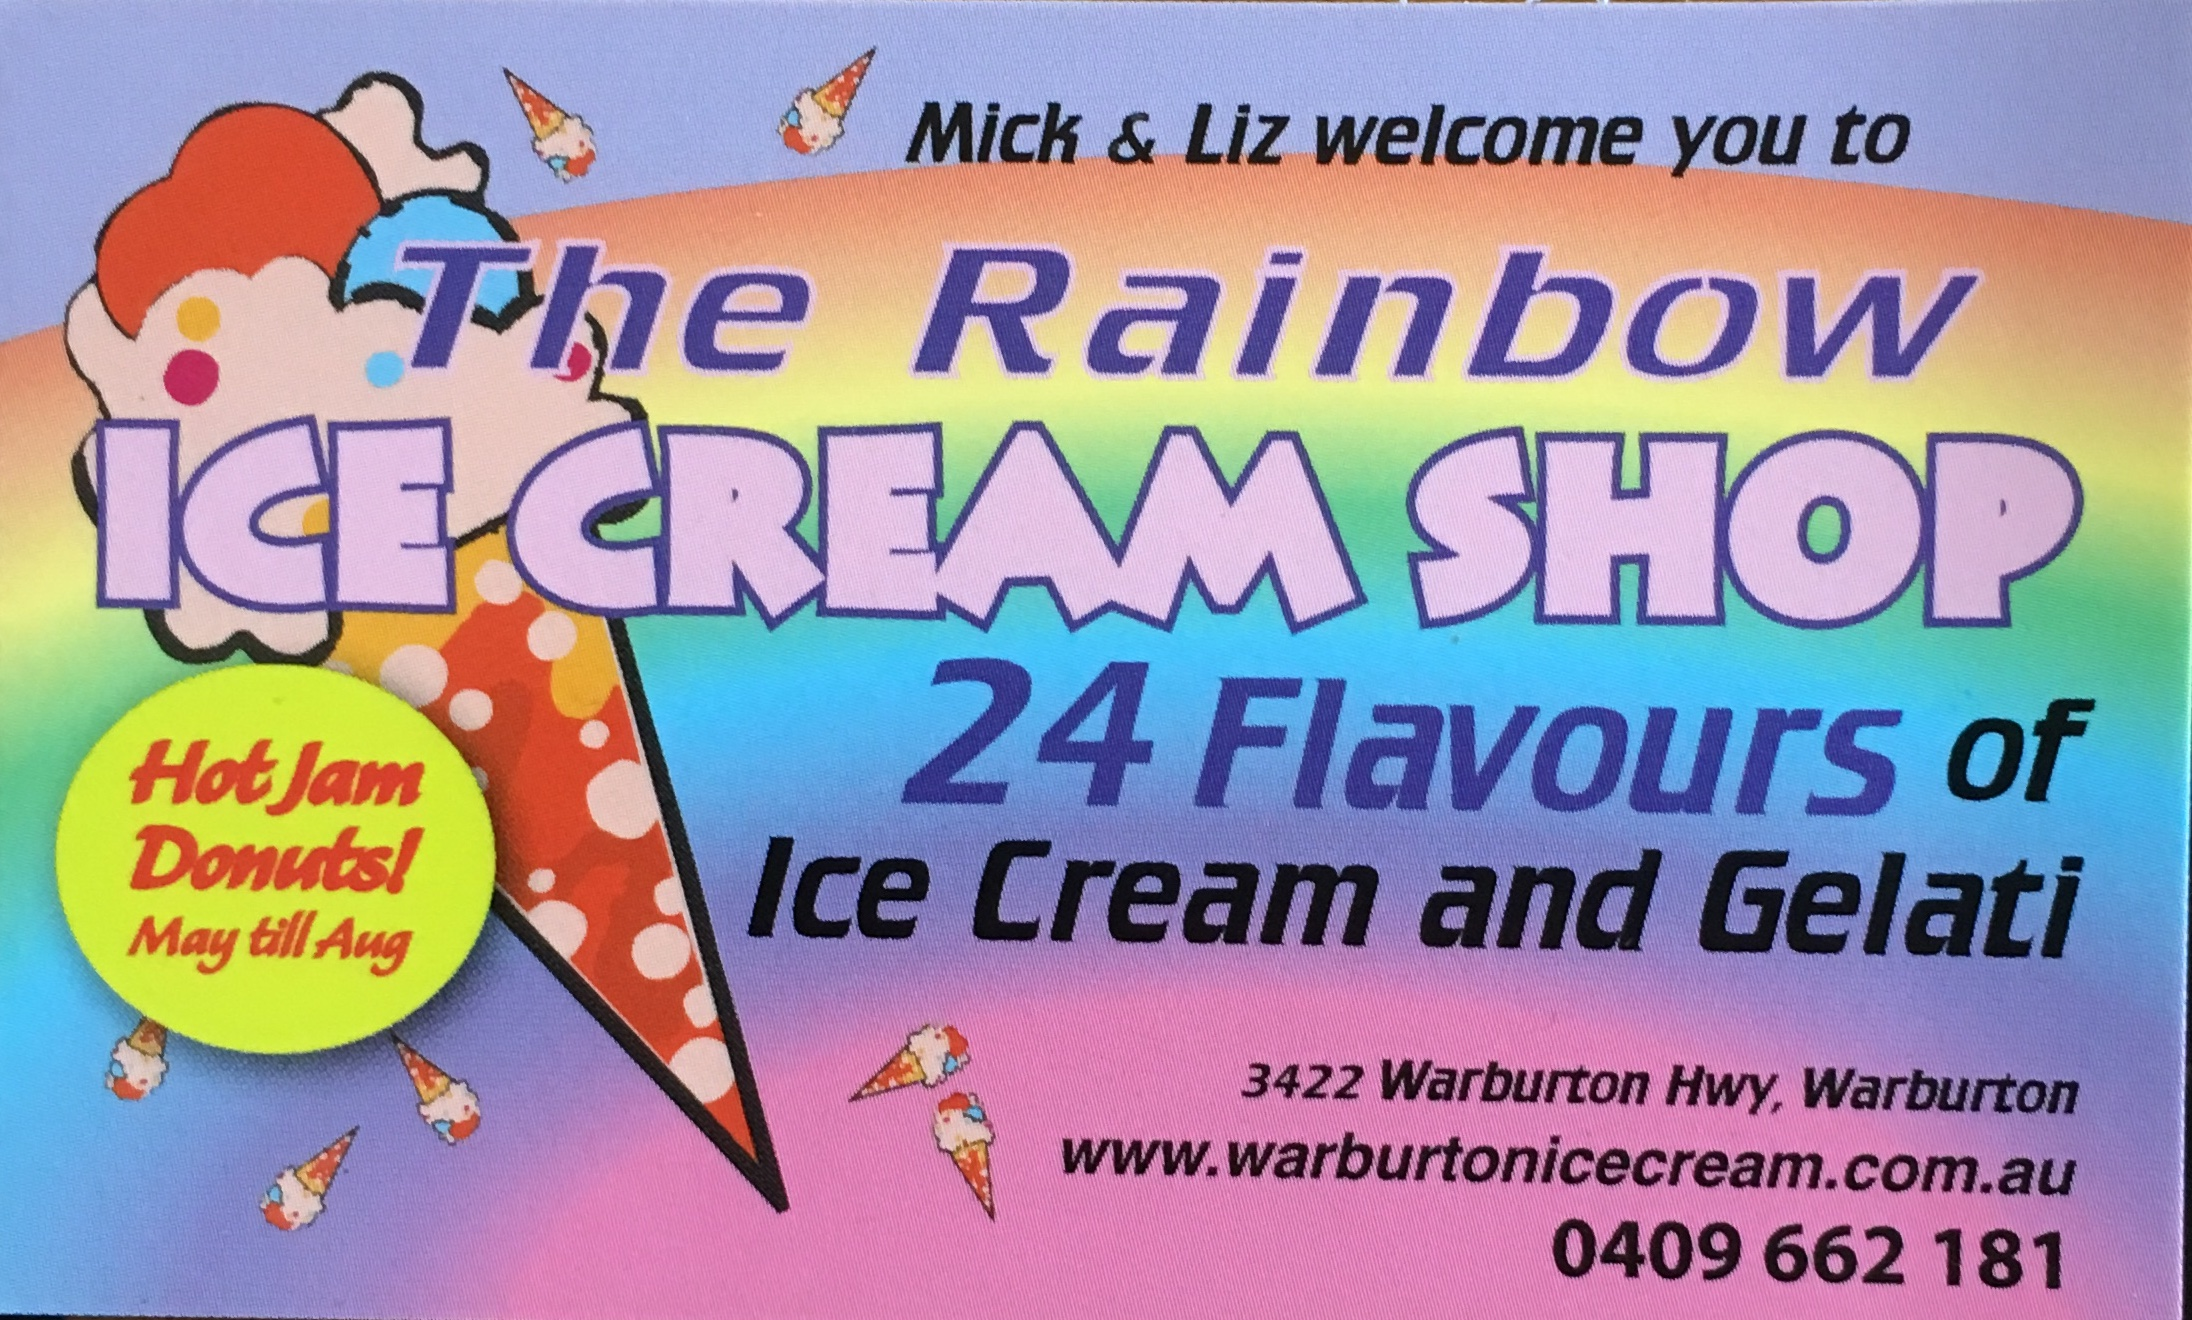 RainbowIcecreamShop.jpg